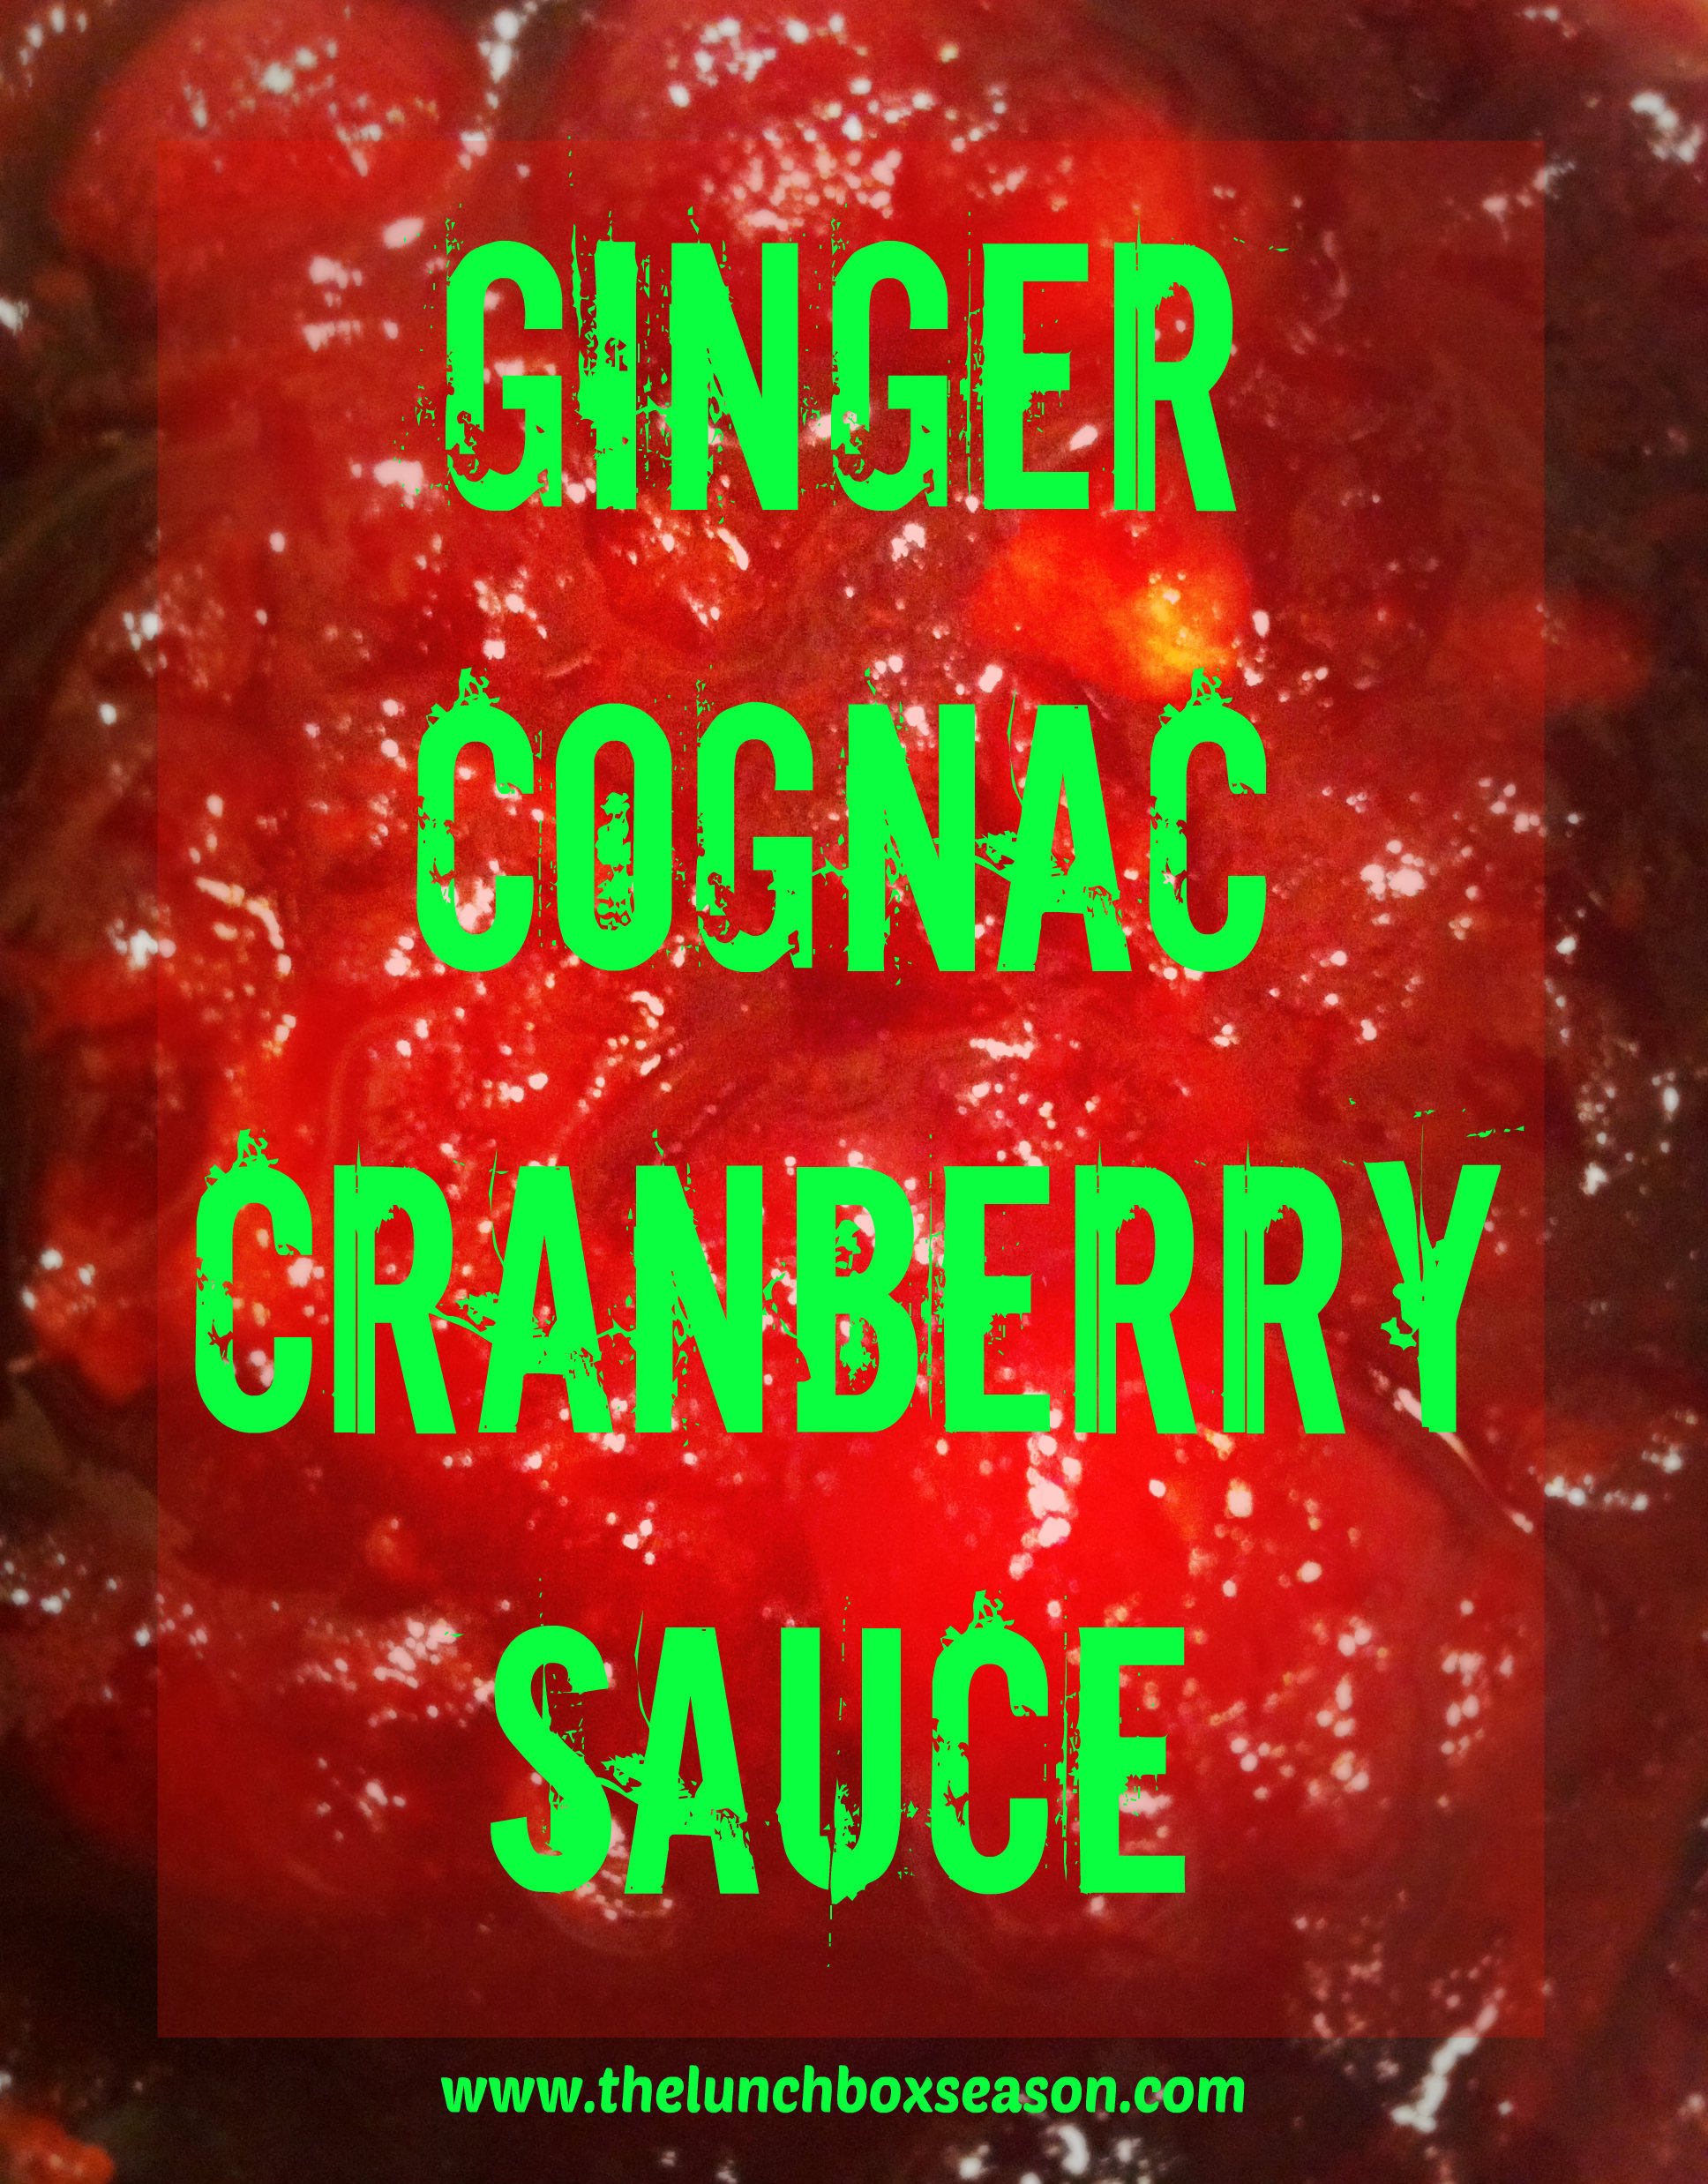 Ginger Cognac Cranberry Sauce from The Lunchbox Season